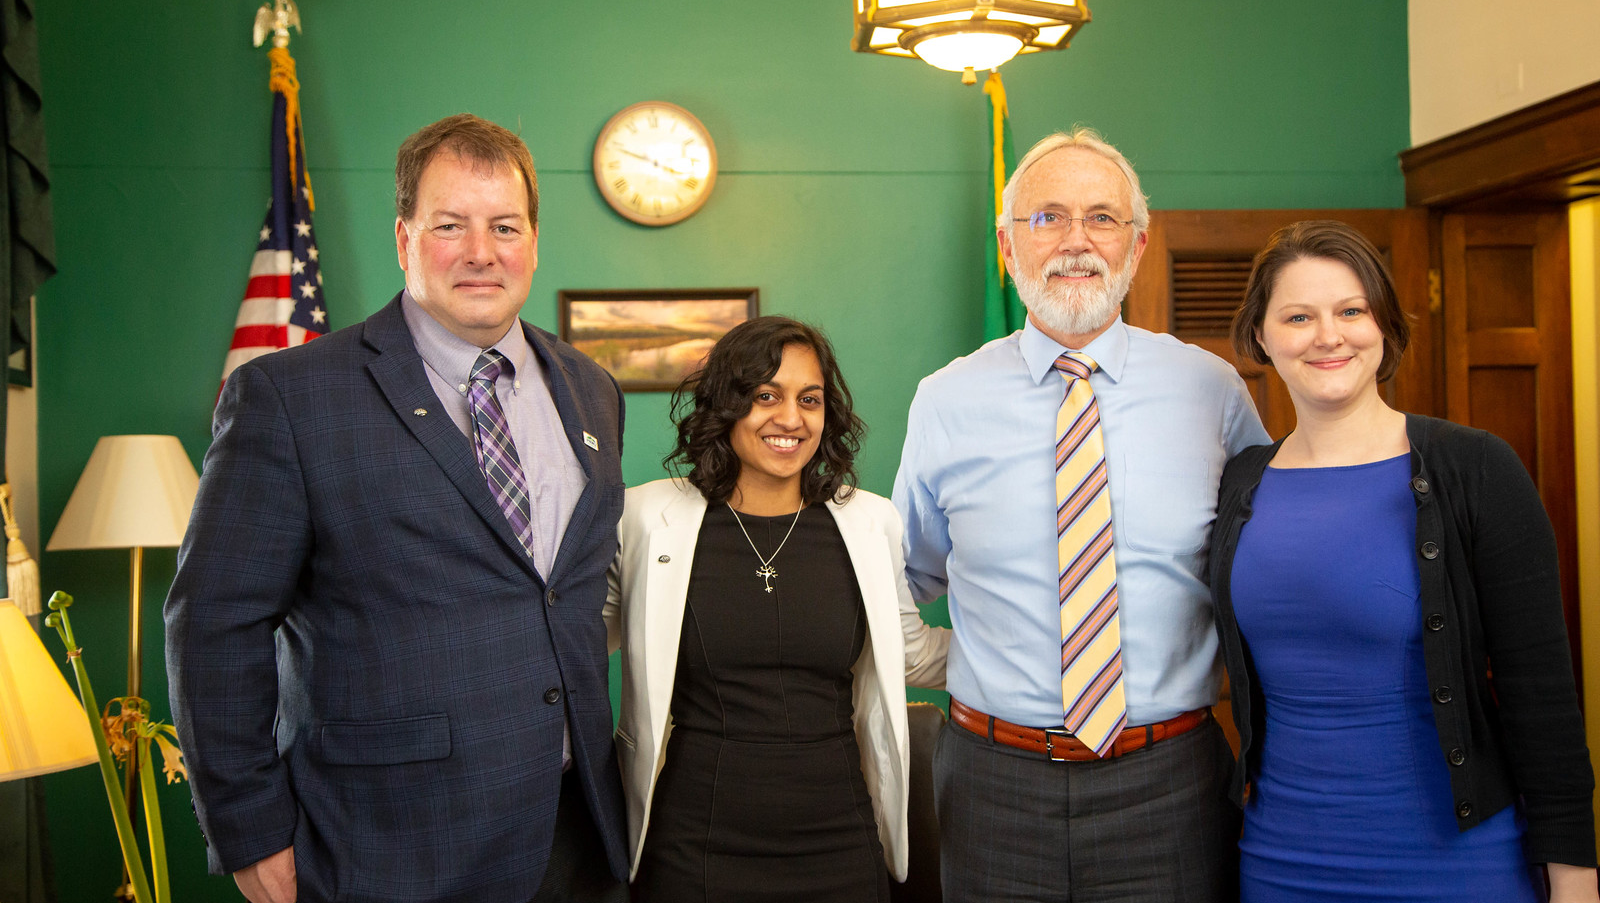 SfN advocates Ed Bilsky, 2019 Early Career Policy Ambassador Priyanka Bushana, and Mollie Marr wrap up a successful meeting with Rep. Dan Newhouse (R-WA) (second from right).